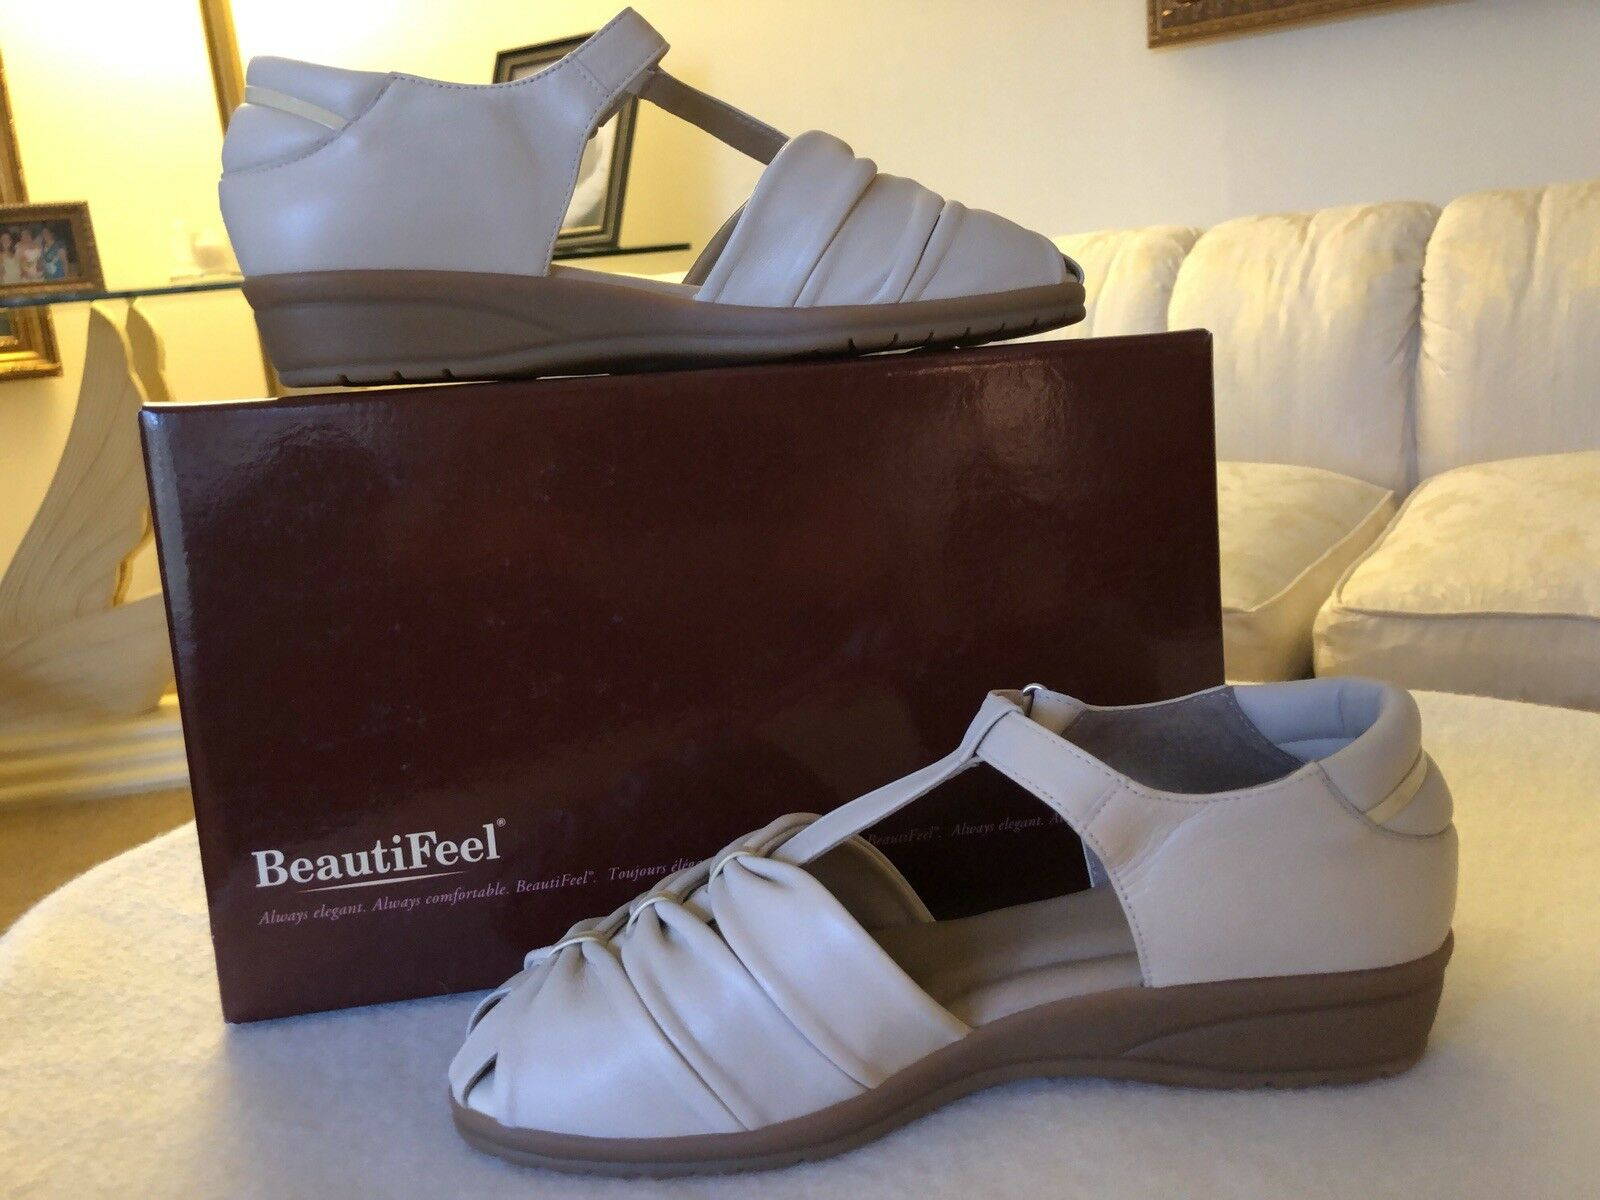 BeautiFeel Designer shoes, Made in Israel, Brand Brand Brand New in Box, 40 M, FREE SHIPPING d7231b